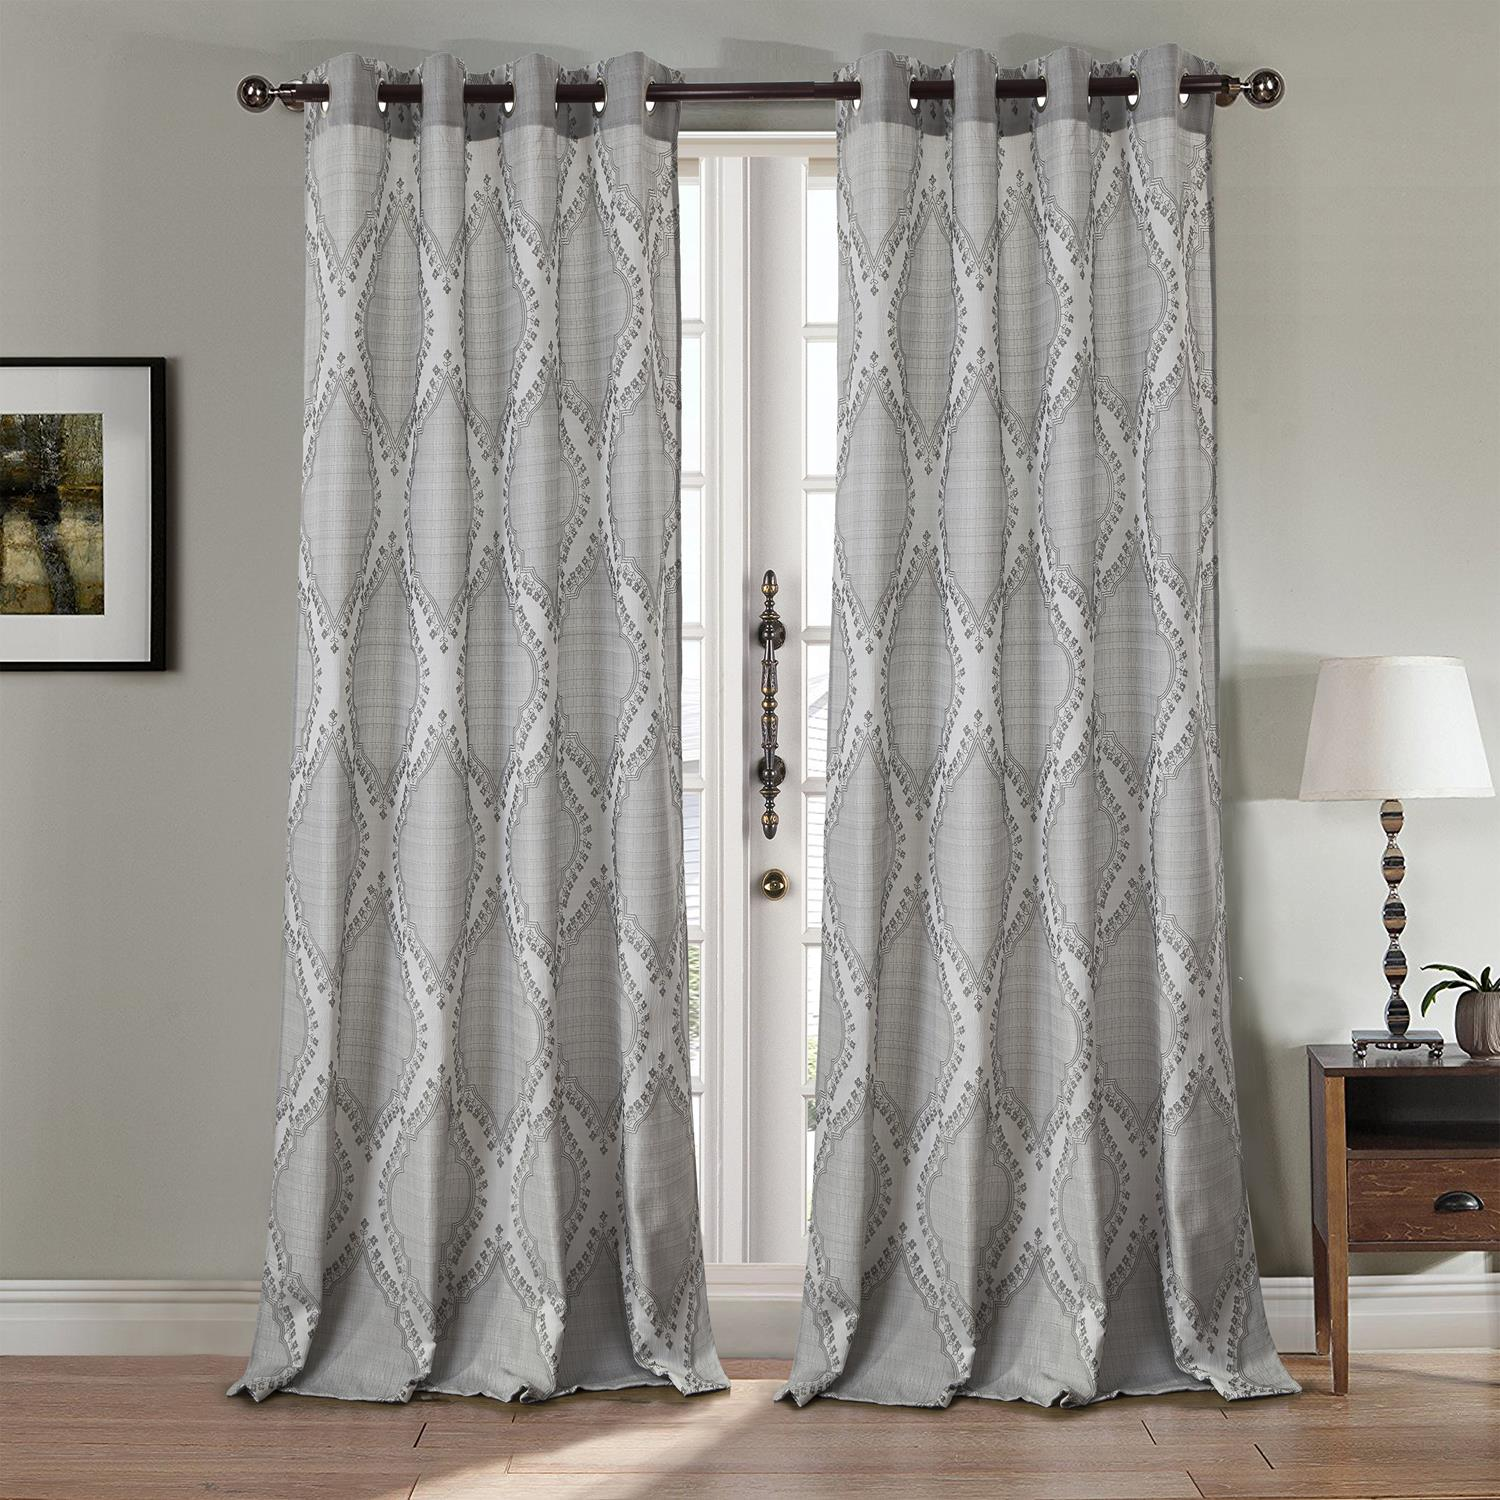 Glendale Jacquard 54 x 84 in. Grommet Curtain Panel, Silver